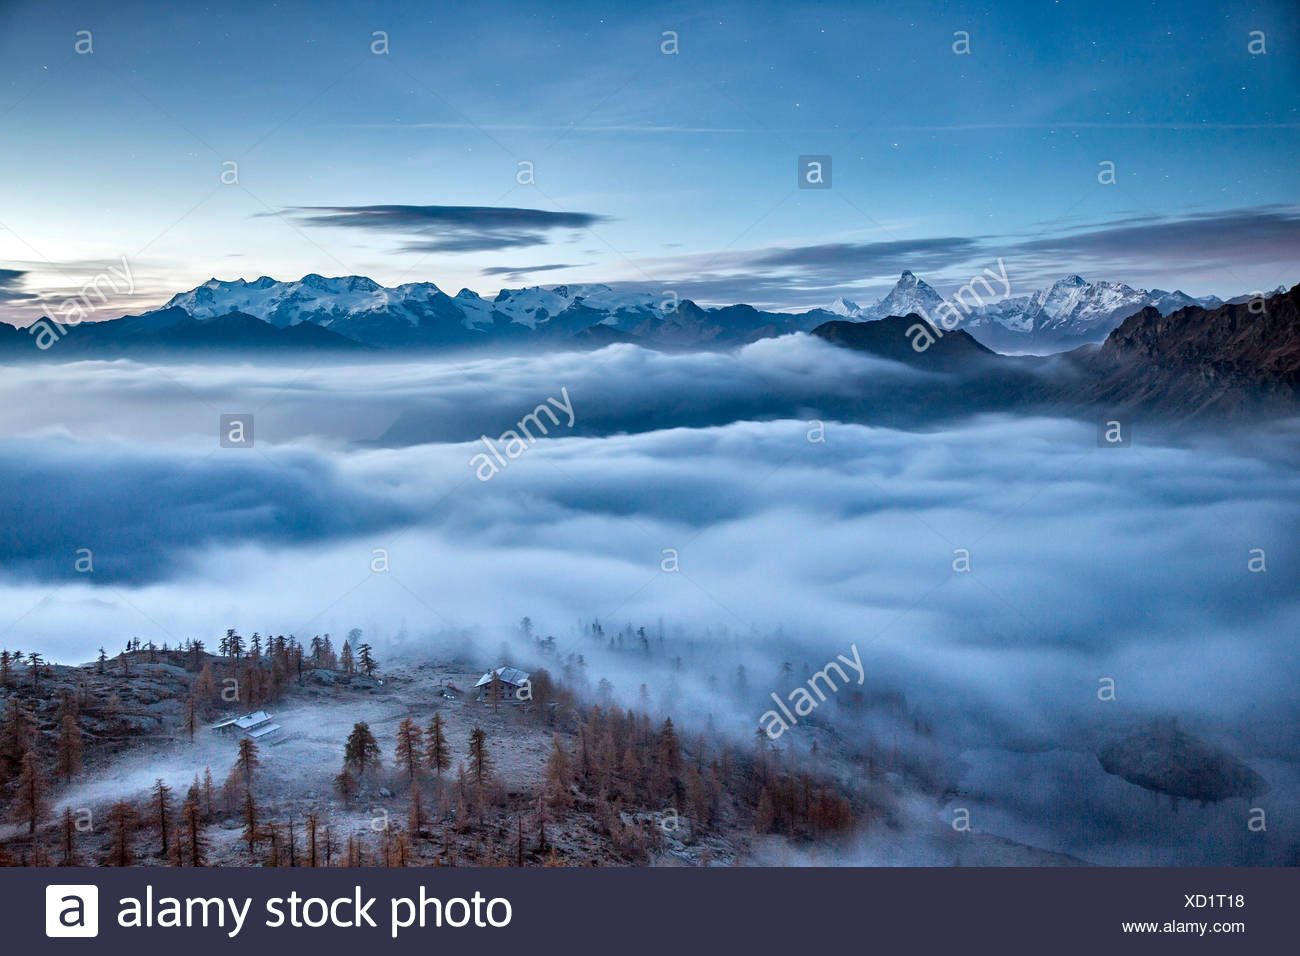 Fog covering Aosta valley at sunrise. Only the Matterhorn and the Monte Rosa emerge like islands from the sea of clouds - Mont Avic natural park, Aosta valley, Italy - Stock Image